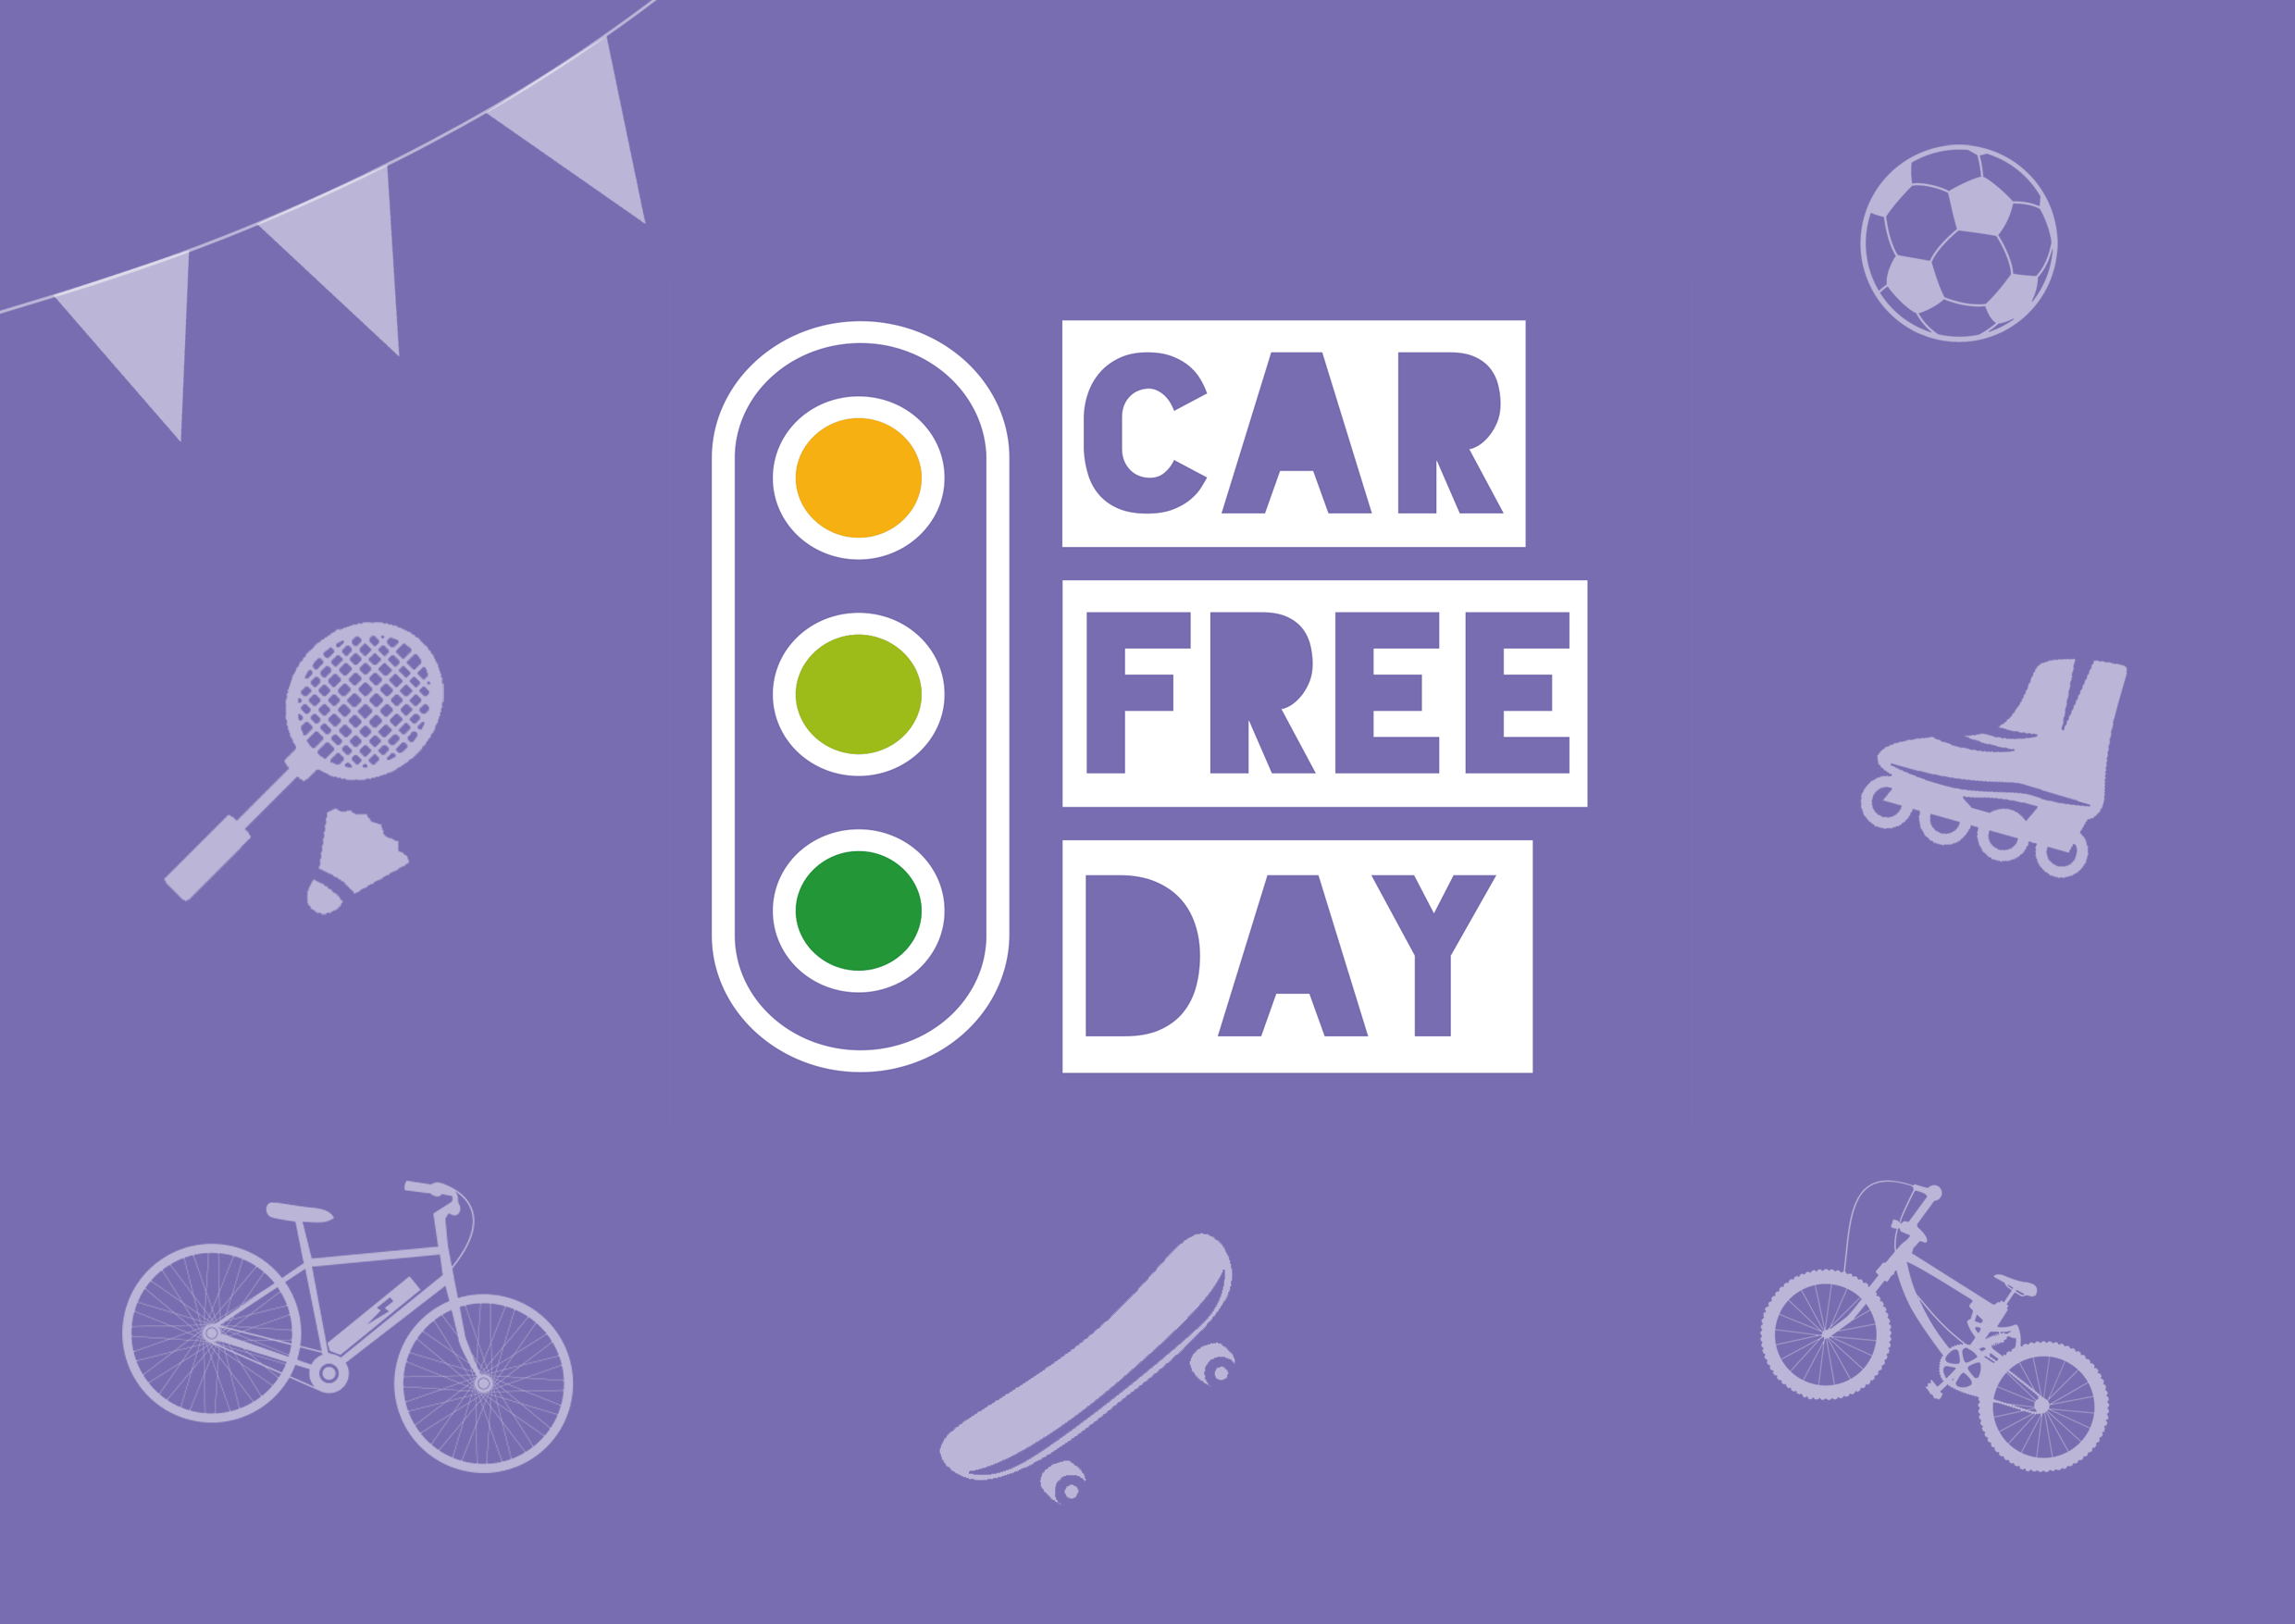 Car_Free_Day_banner